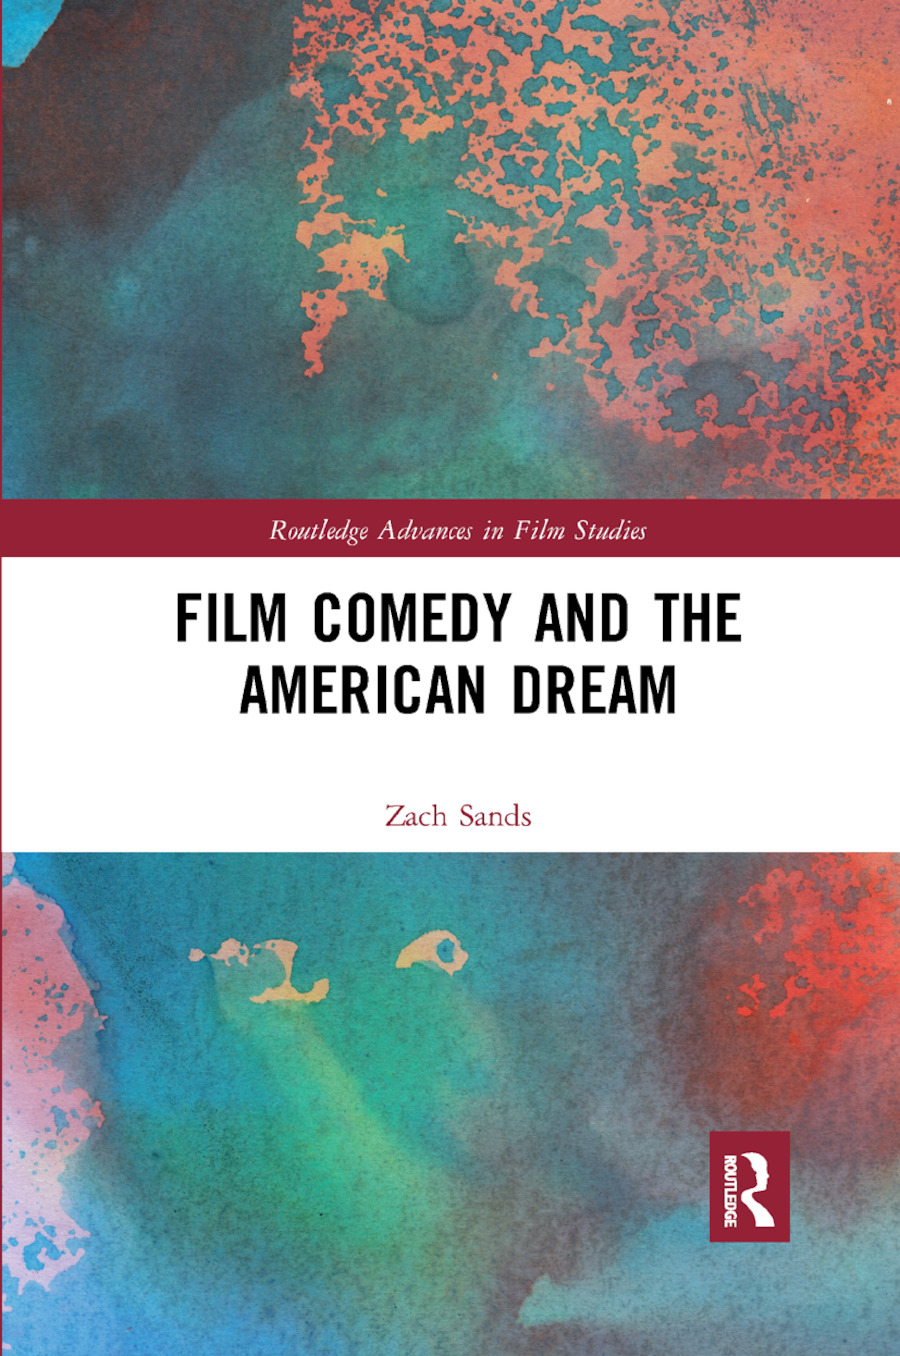 Film Comedy and the American Dream book cover